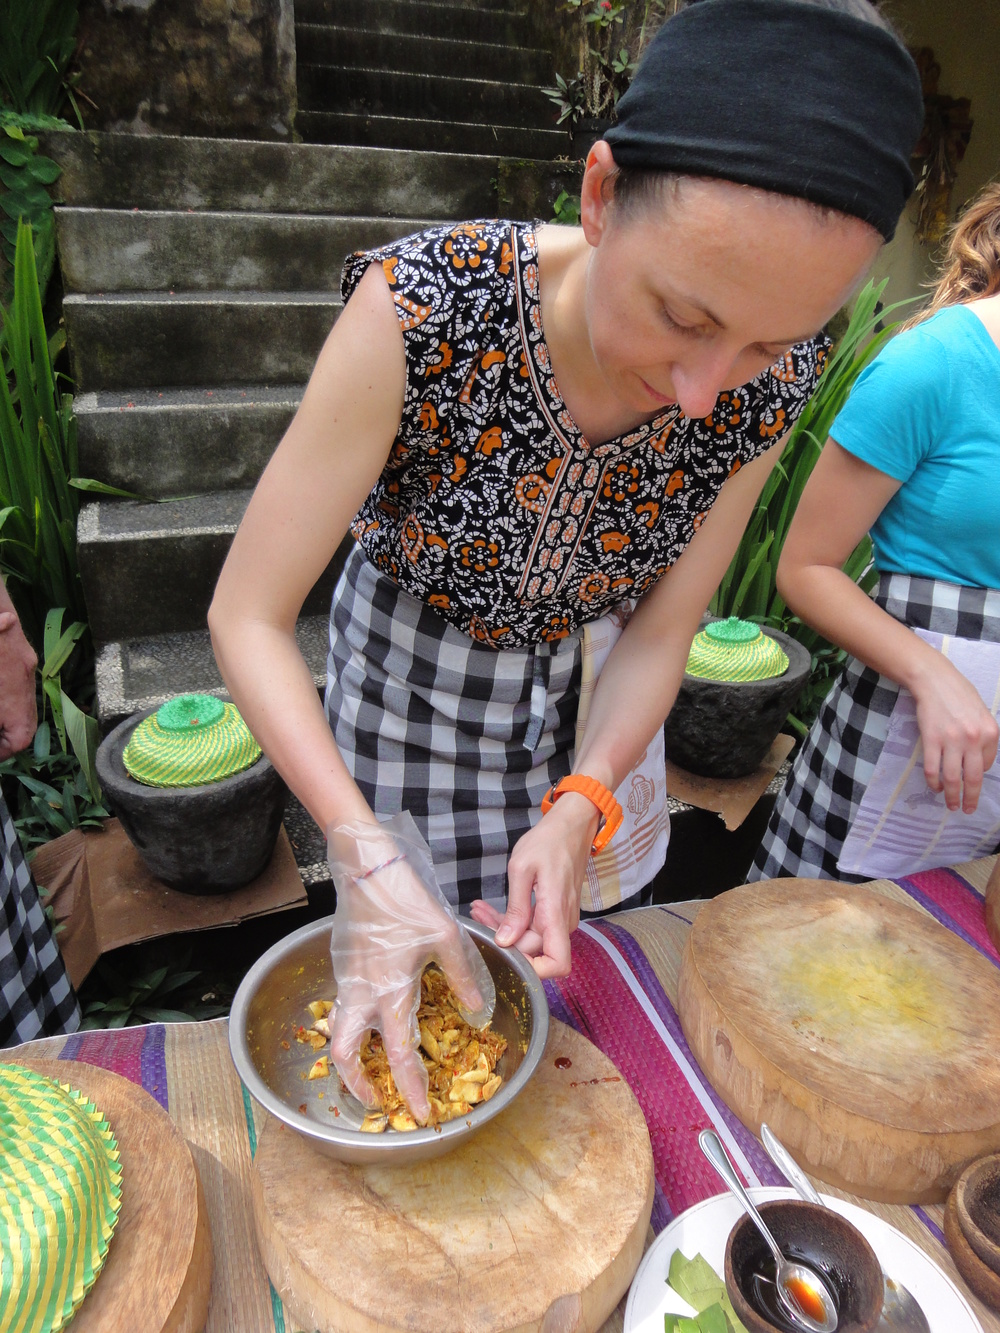 Me having an incredible time during my Balinese cooking class in Bali last year.